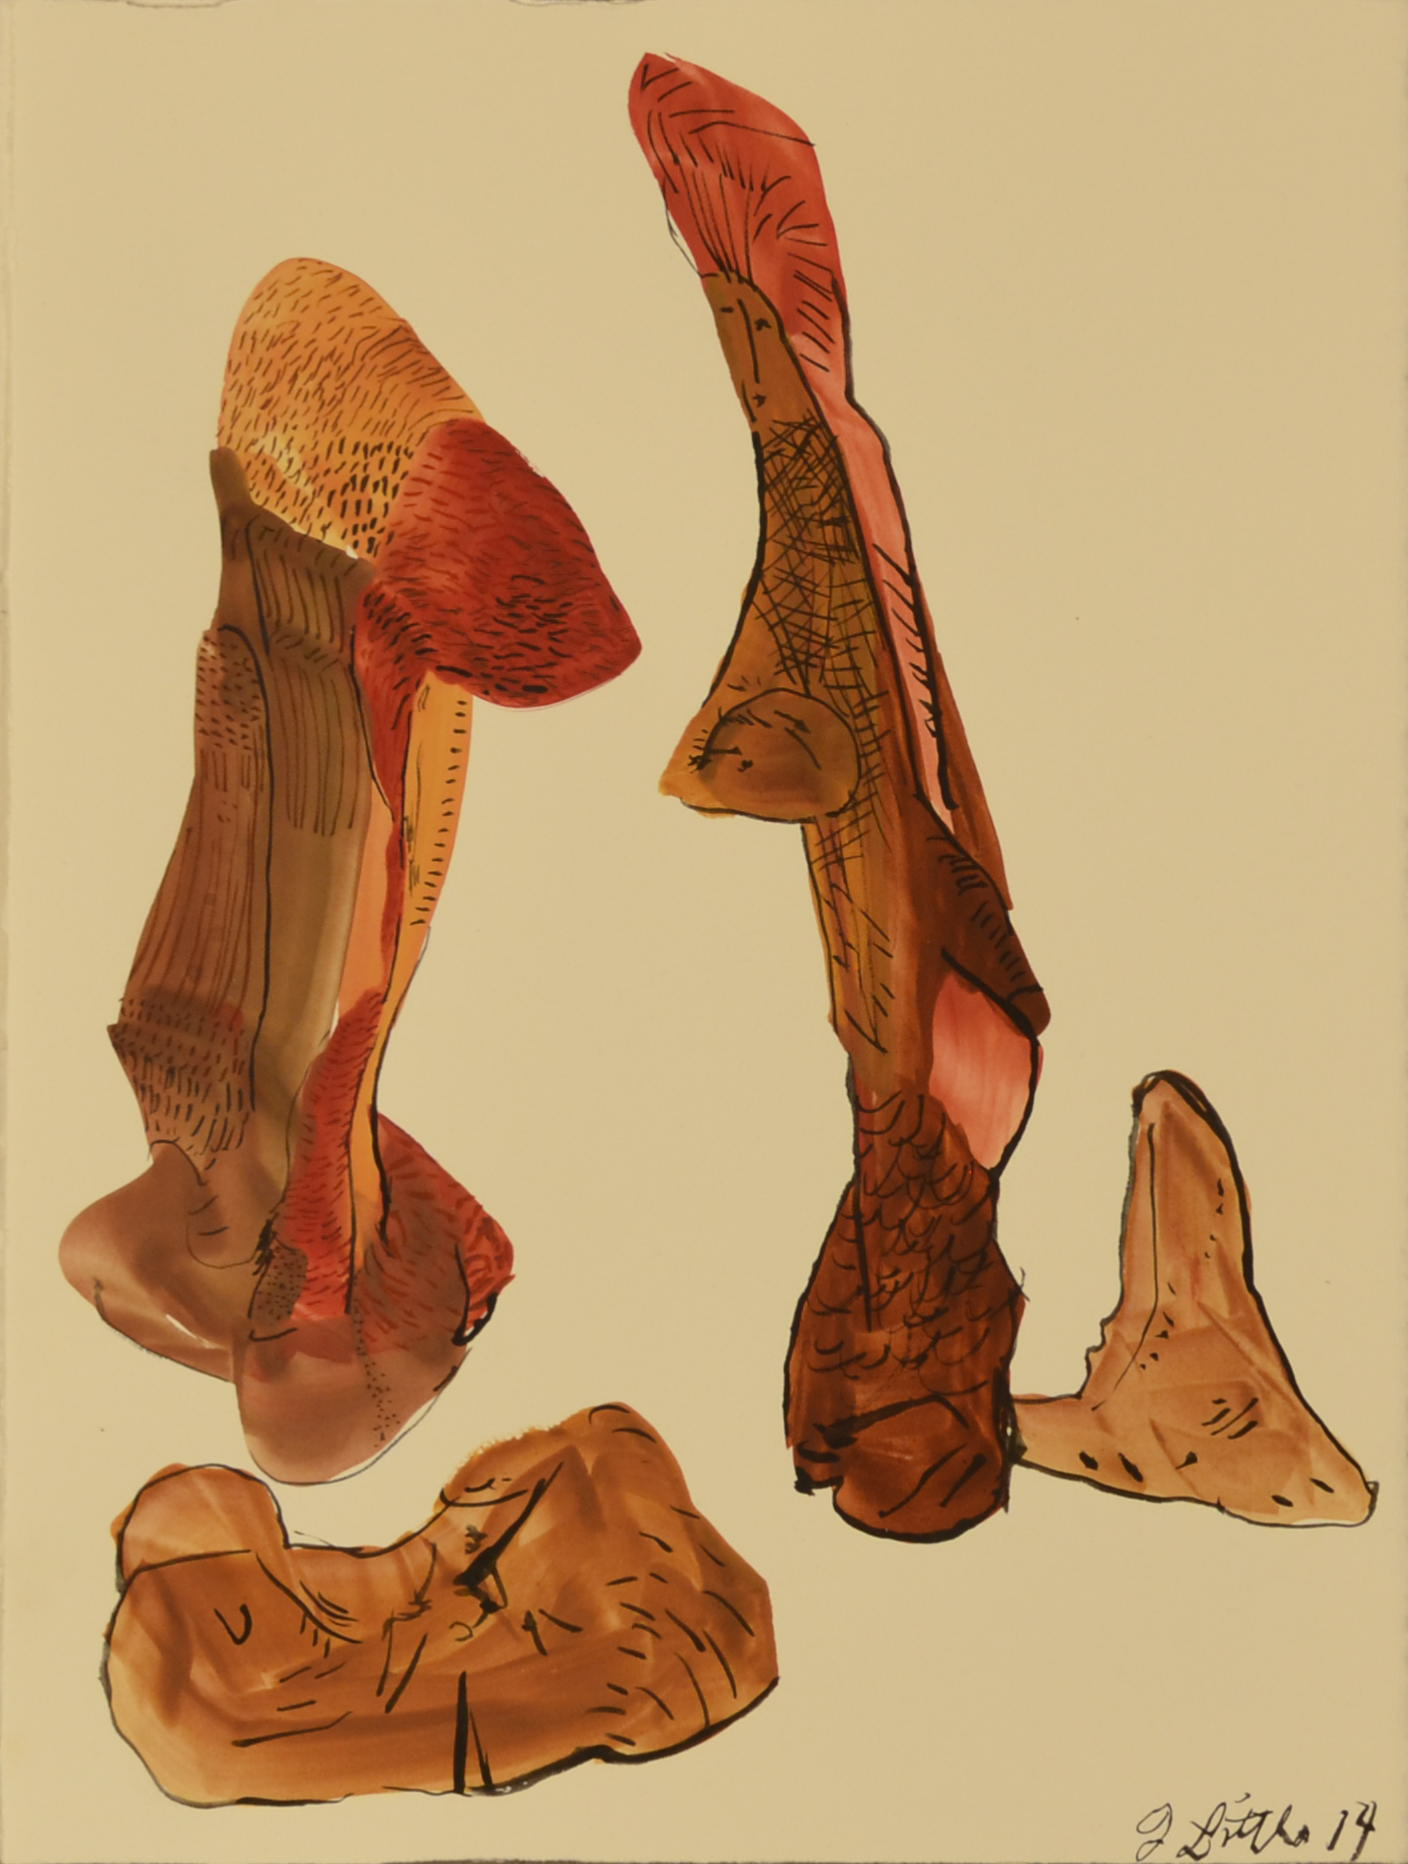 Four Red Figures,11 x 15 inches, watercolor on paper,2014.